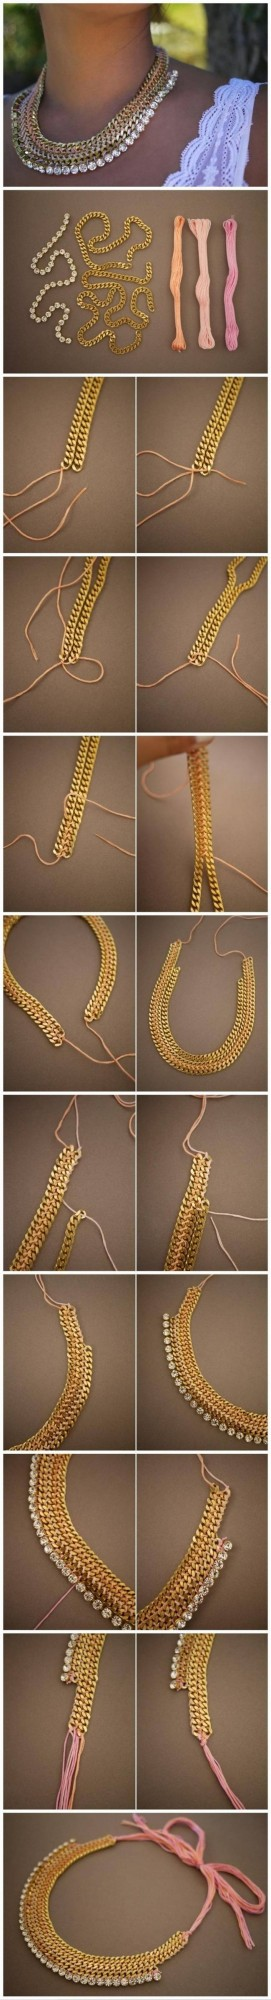 diy necklace jewelry tutorial craft ideas77